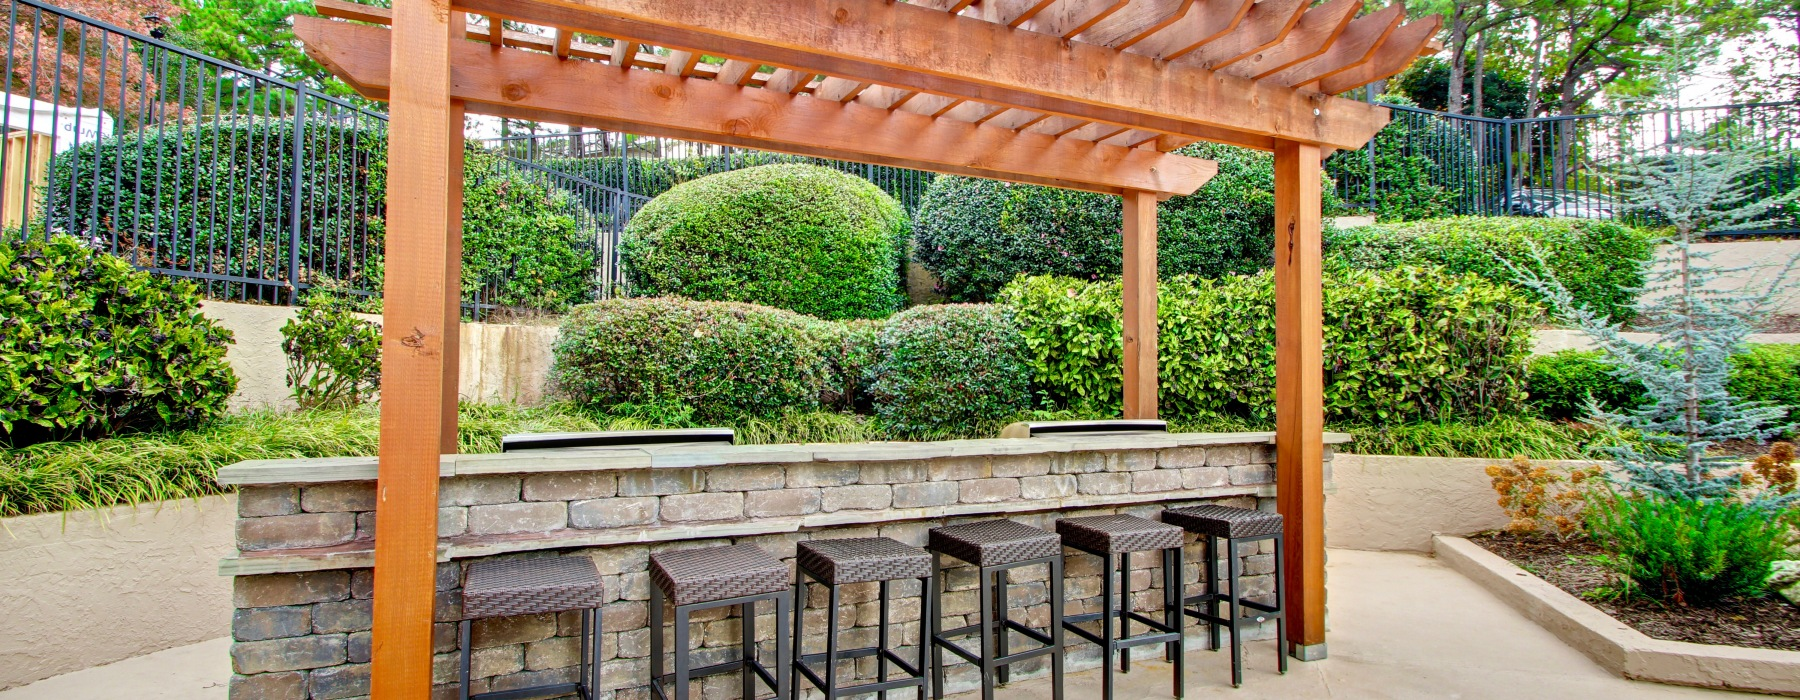 Pull up a chair at our outdoor pergola and grill